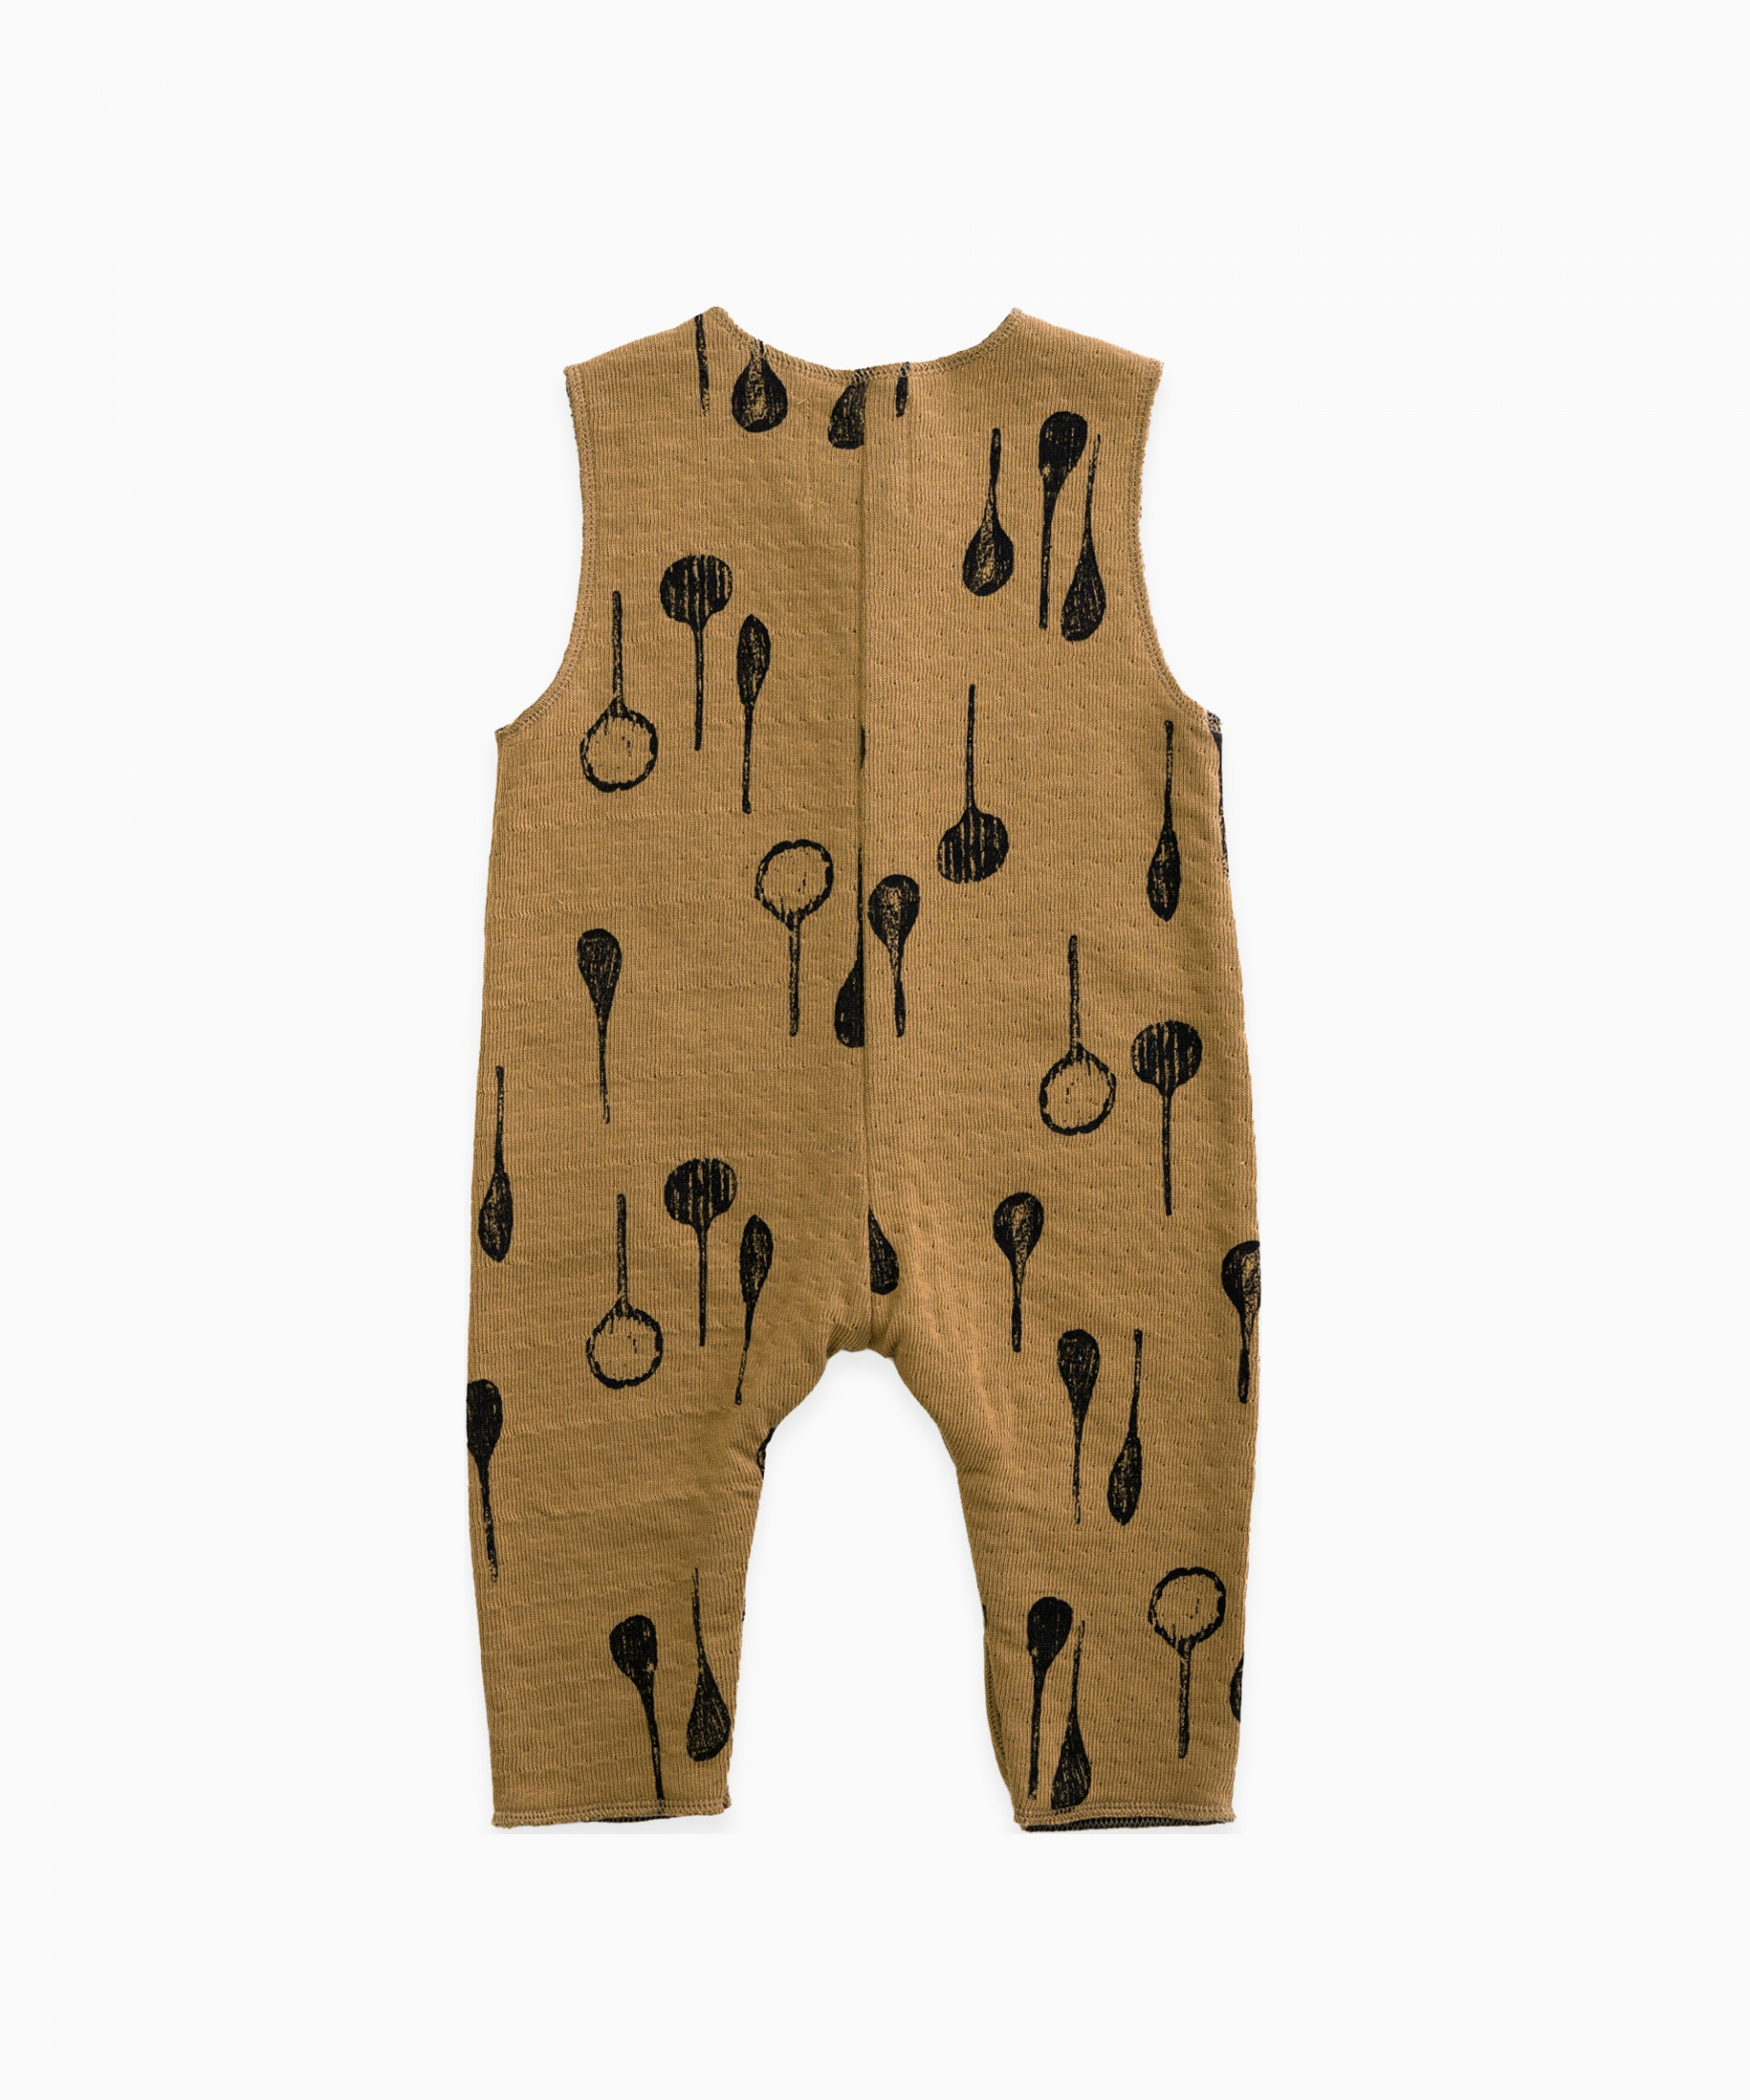 Double-sided sleeveless jumpsuit | Woodwork